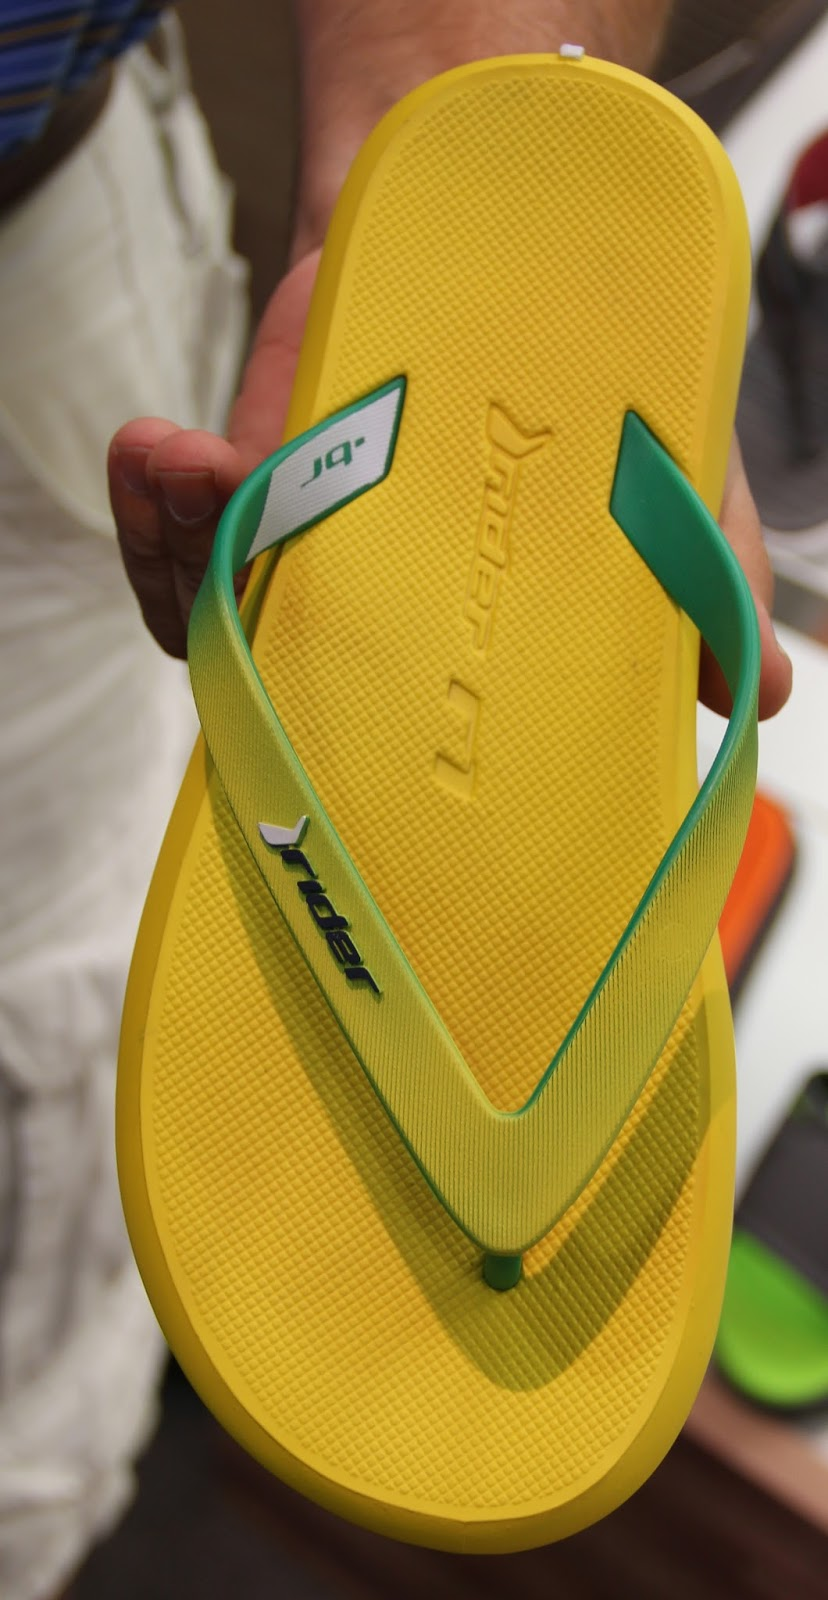 We re sure it is practically law in Brazil (Brasil) for native companies to  salute their highly ranked team. At OR-Rider sandals---flaunt their  country s ... d0ca899fcbfd